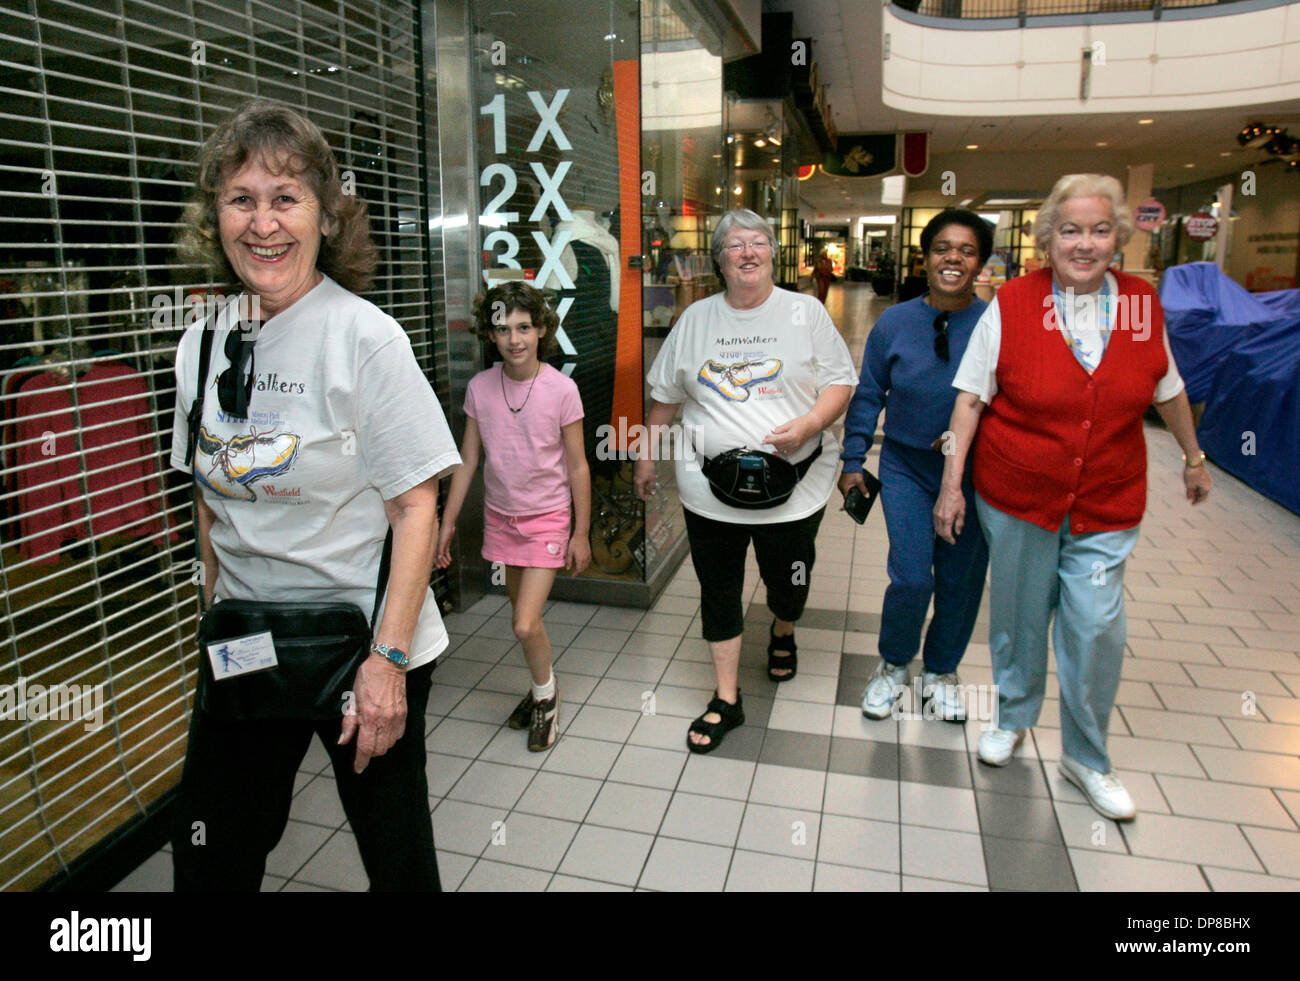 Published 12 15 2005 NC 4 A Group Of Morning Mall Walkers Make Their Way Around The Lower Level Plaza Camino Real LtoR JOAN CEDERQUIST Cq